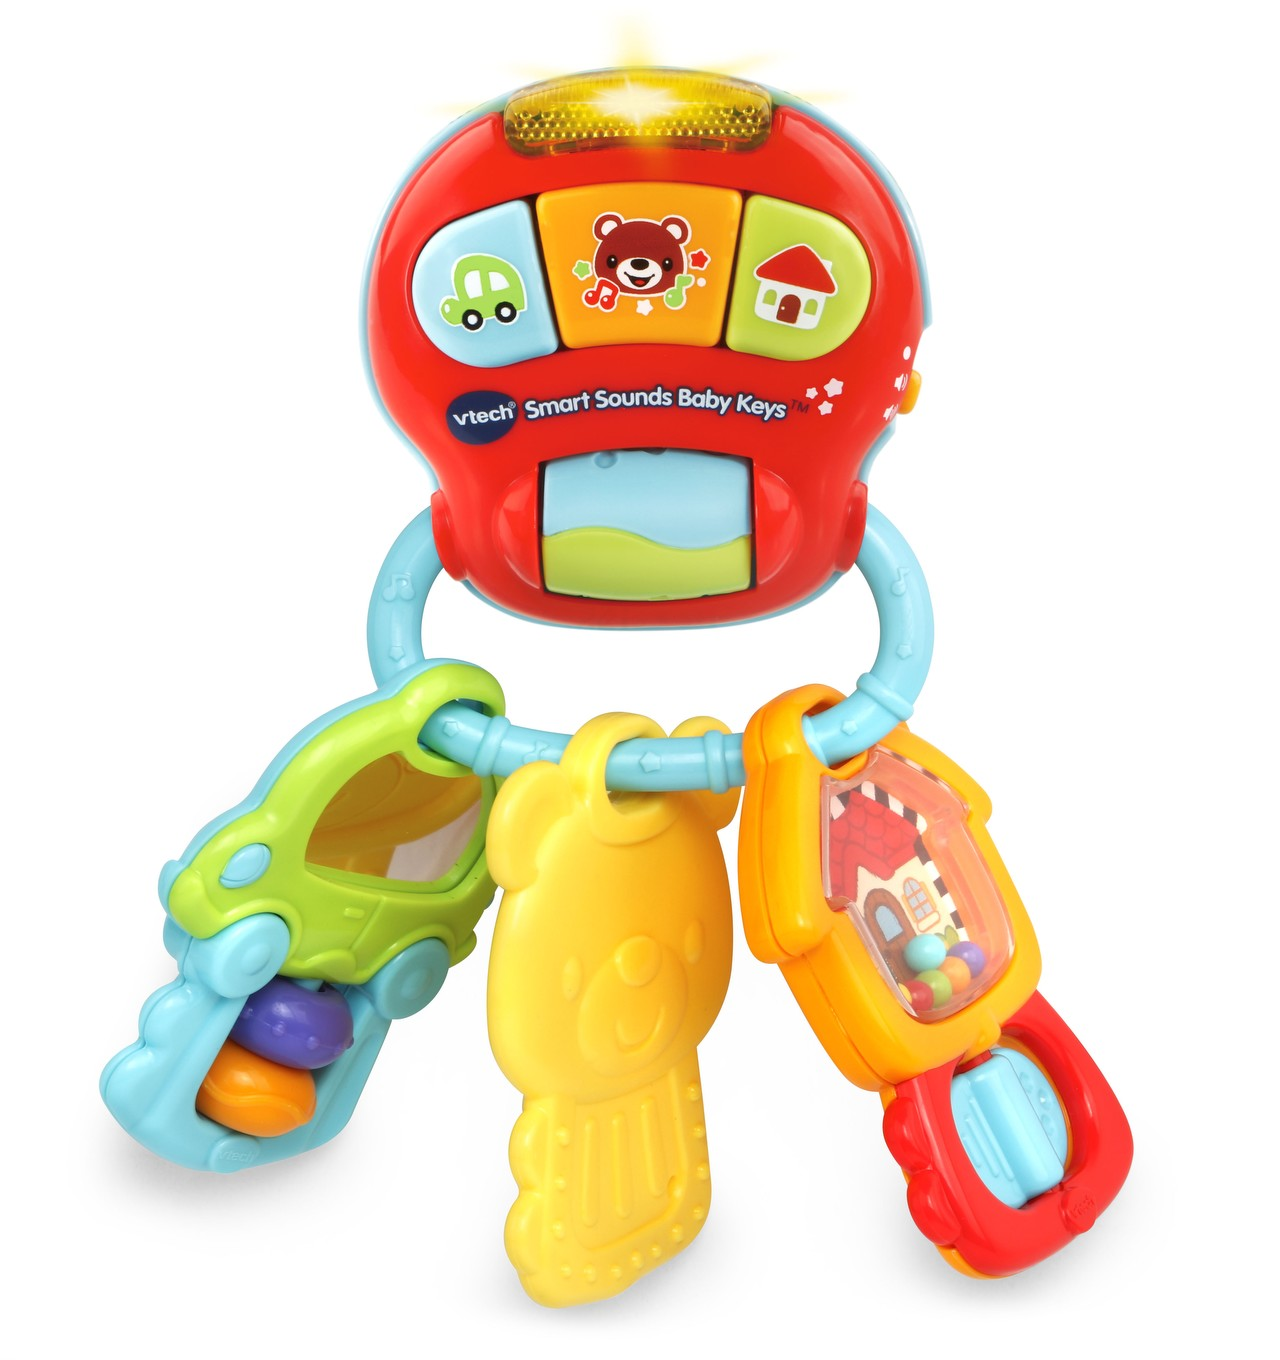 Smart Sounds Baby Keys Baby Toy Vtech